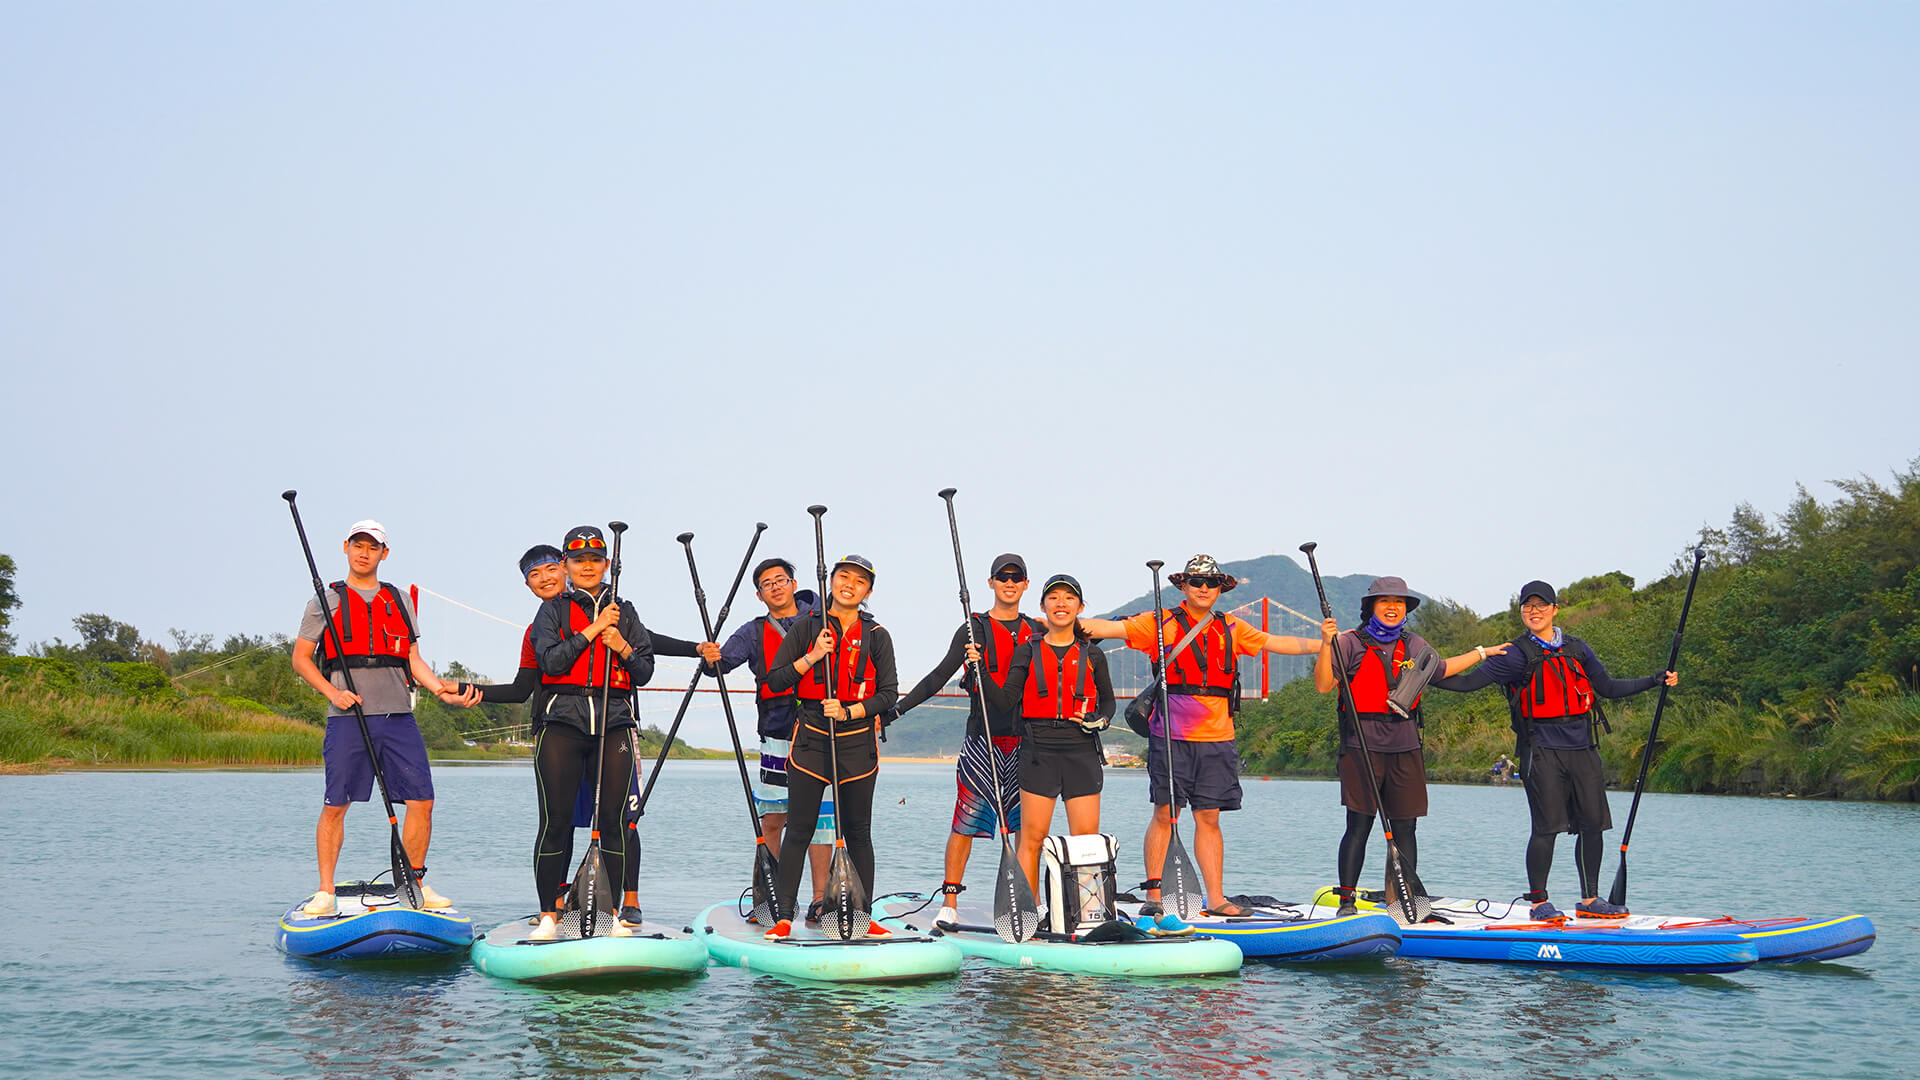 SUP立槳 – Stand up paddle!